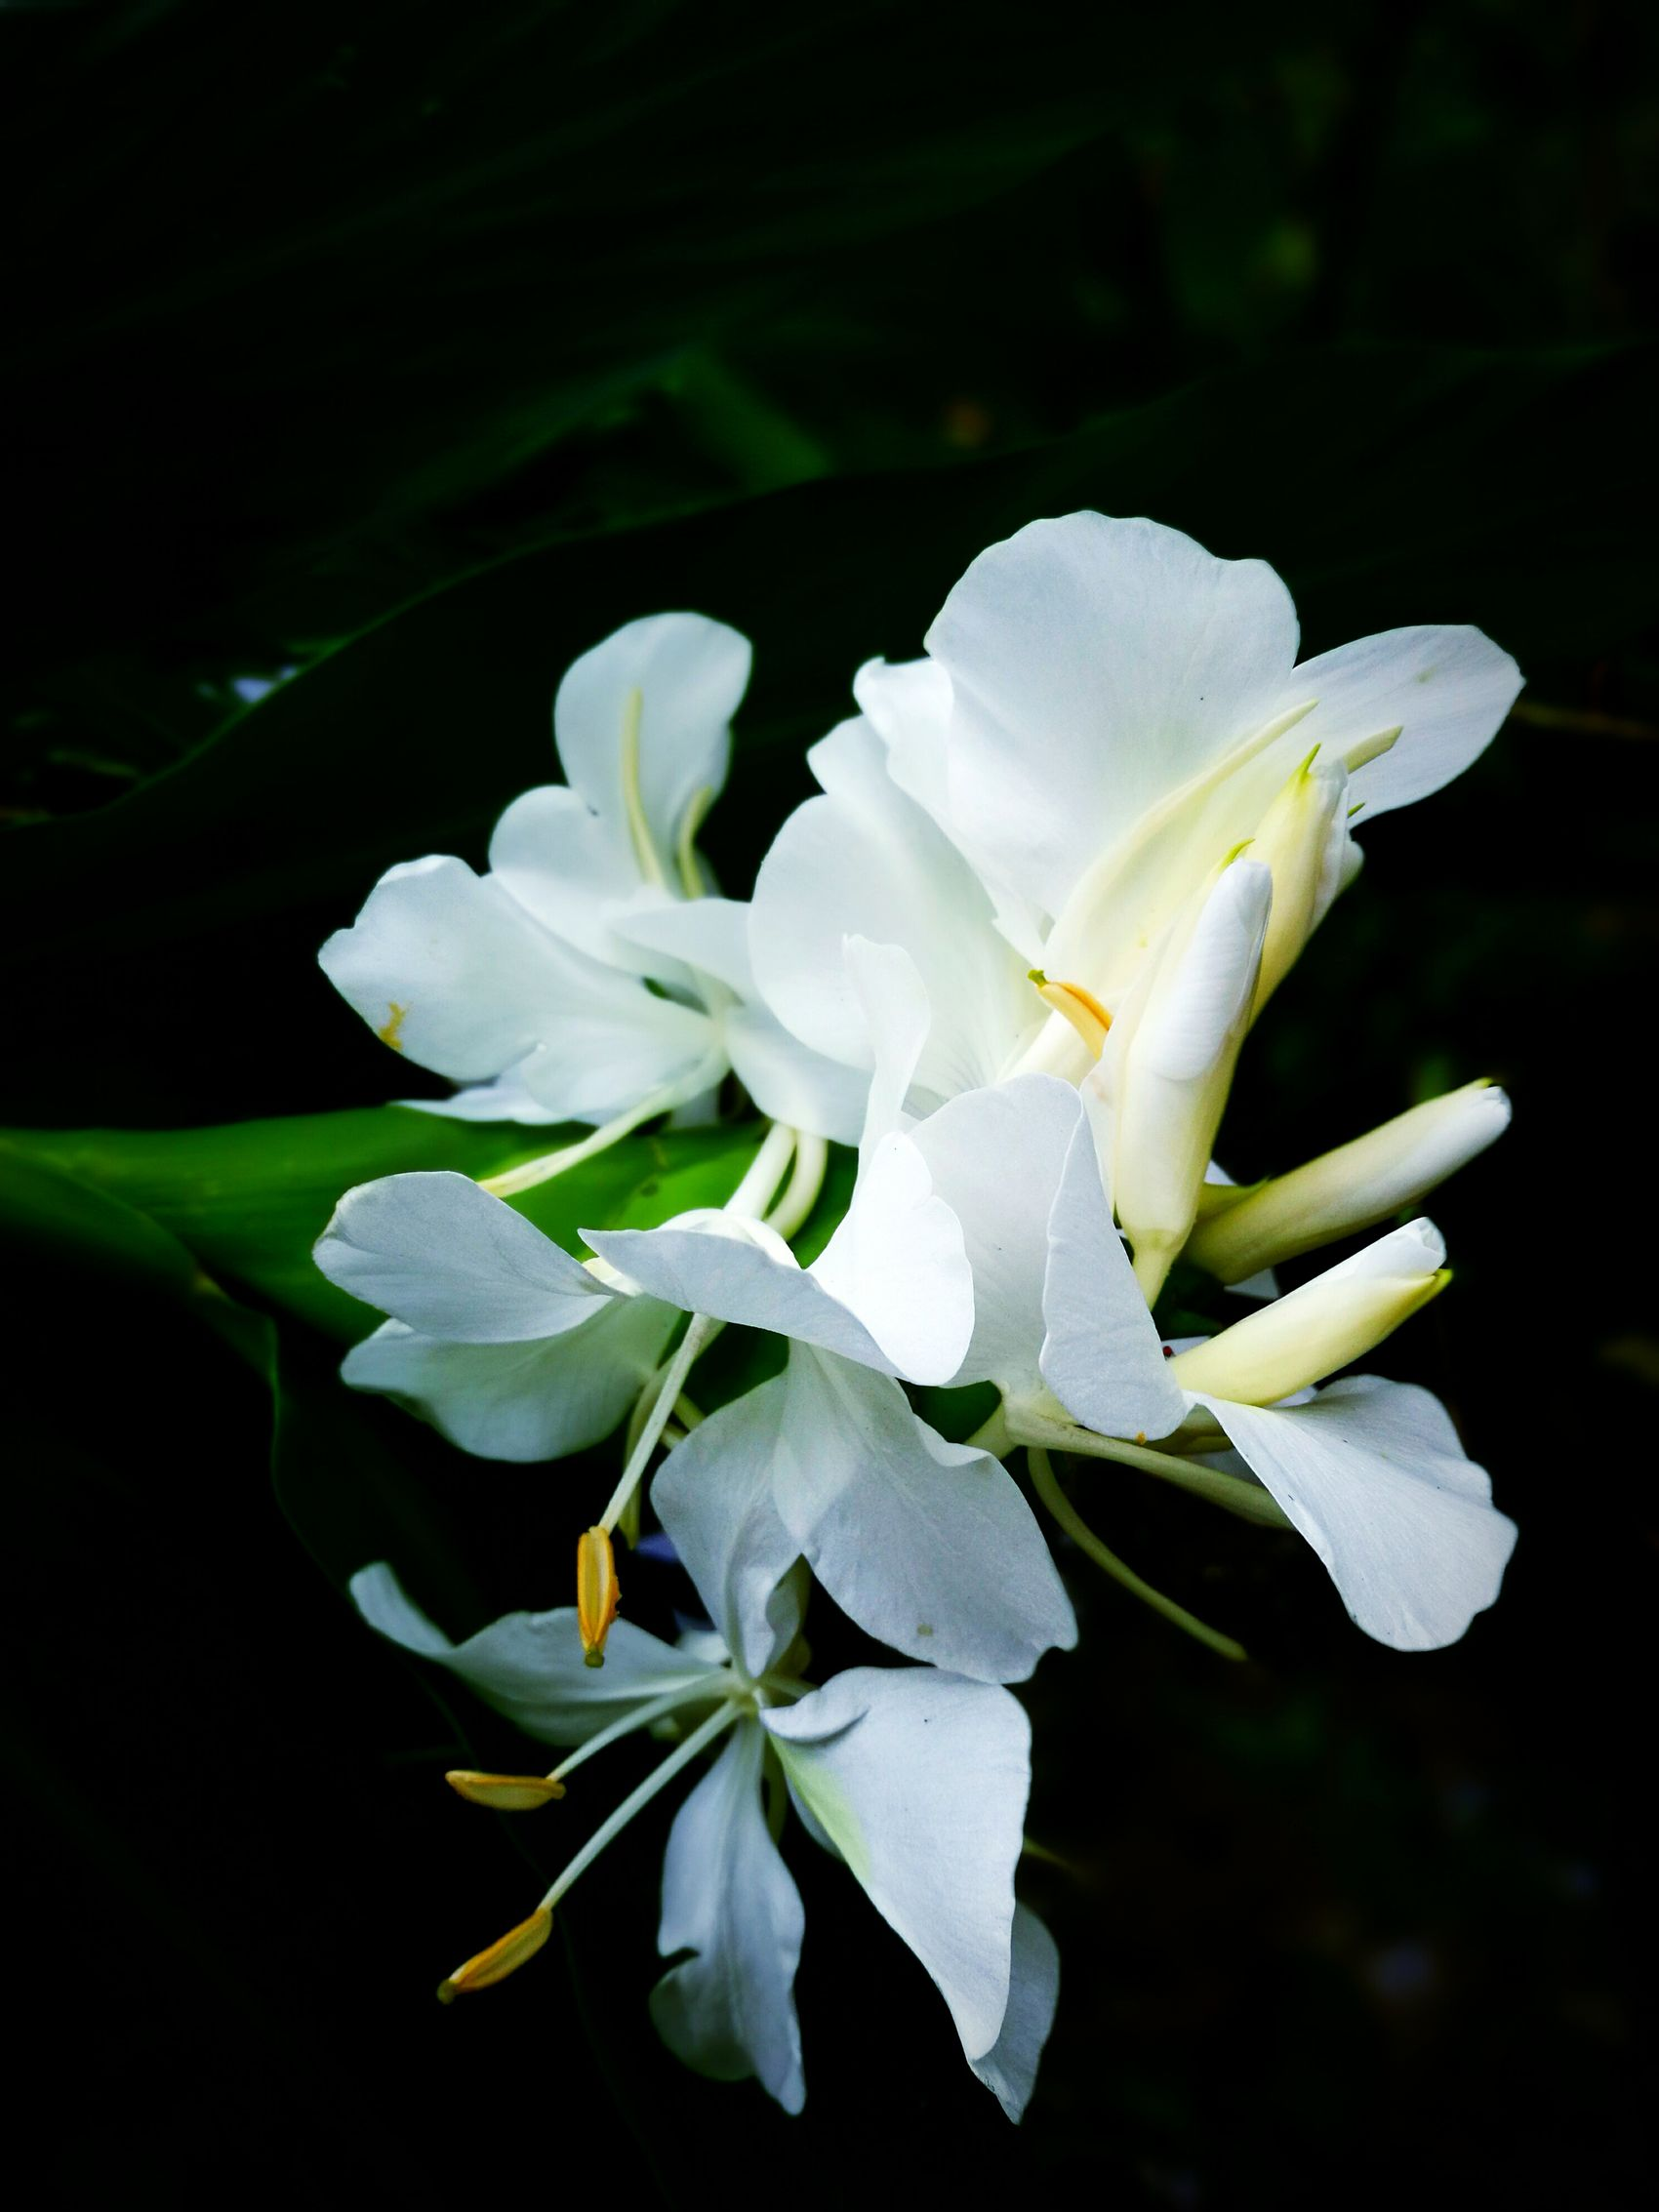 Taking Photos Hanging Out Check This Out Hello World Relaxing Enjoying Life Nature White Flower Paiwan